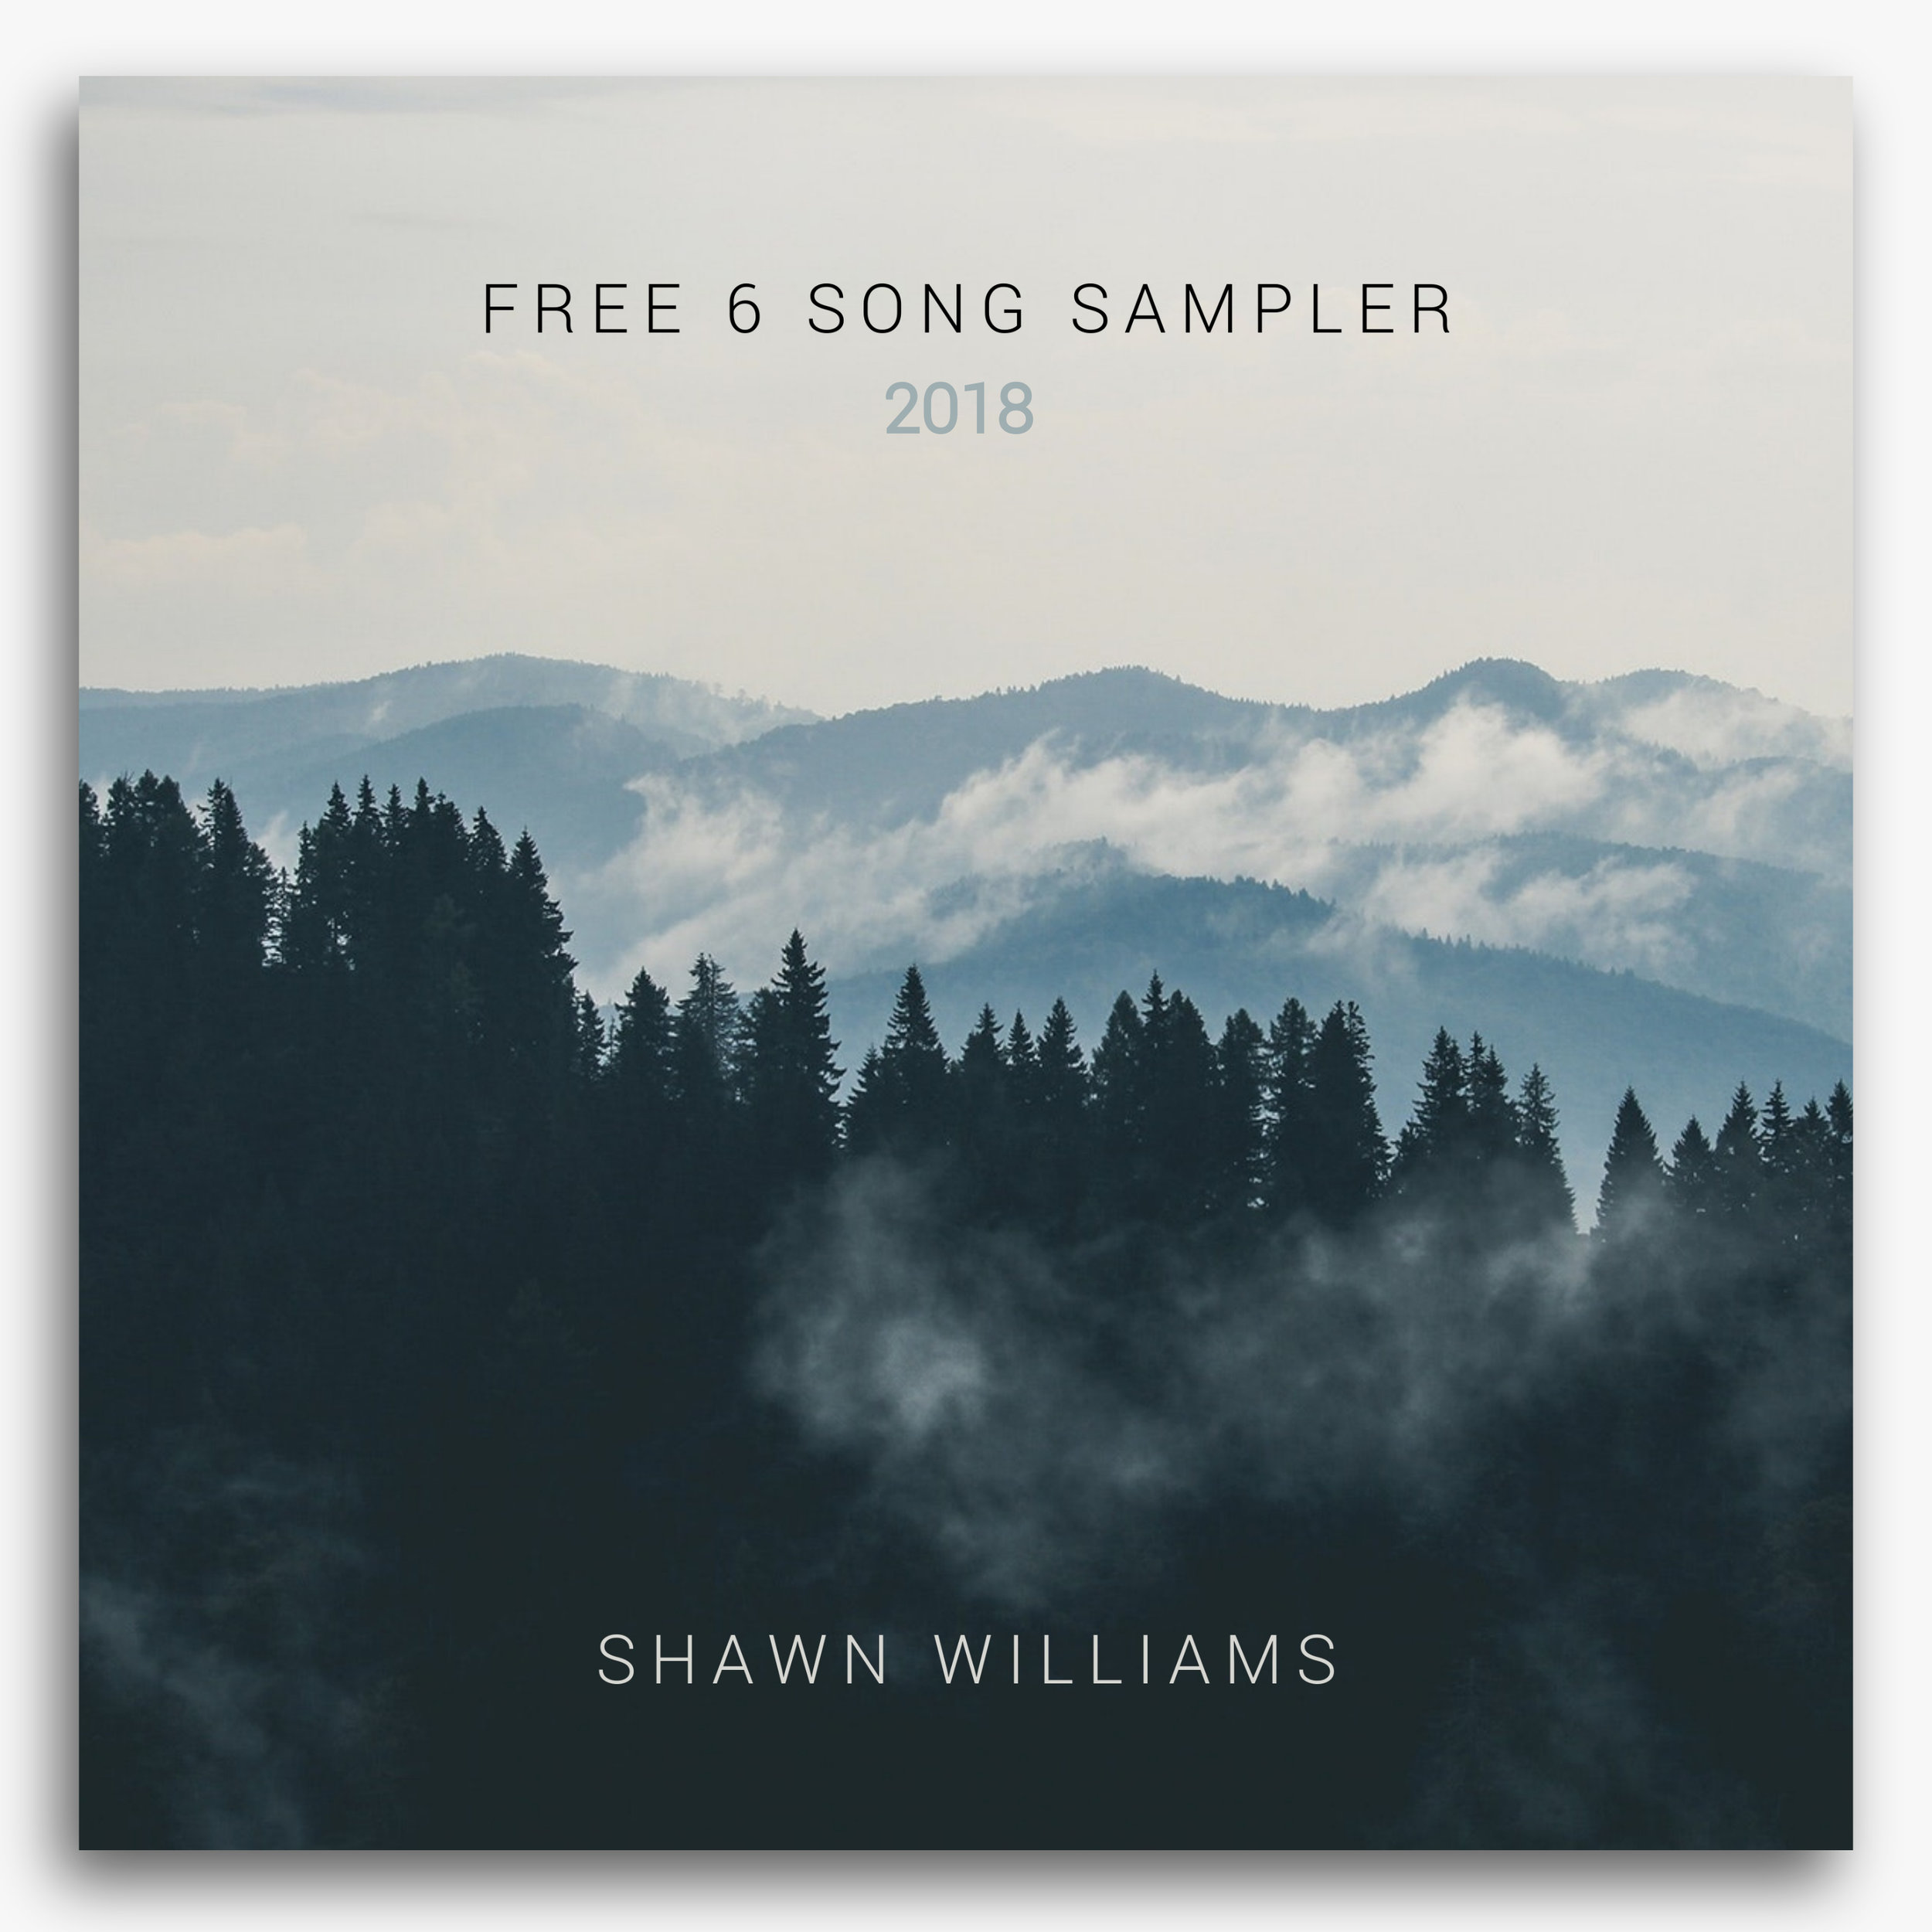 A free music sampler of instrumental music from composer, Shawn Williams